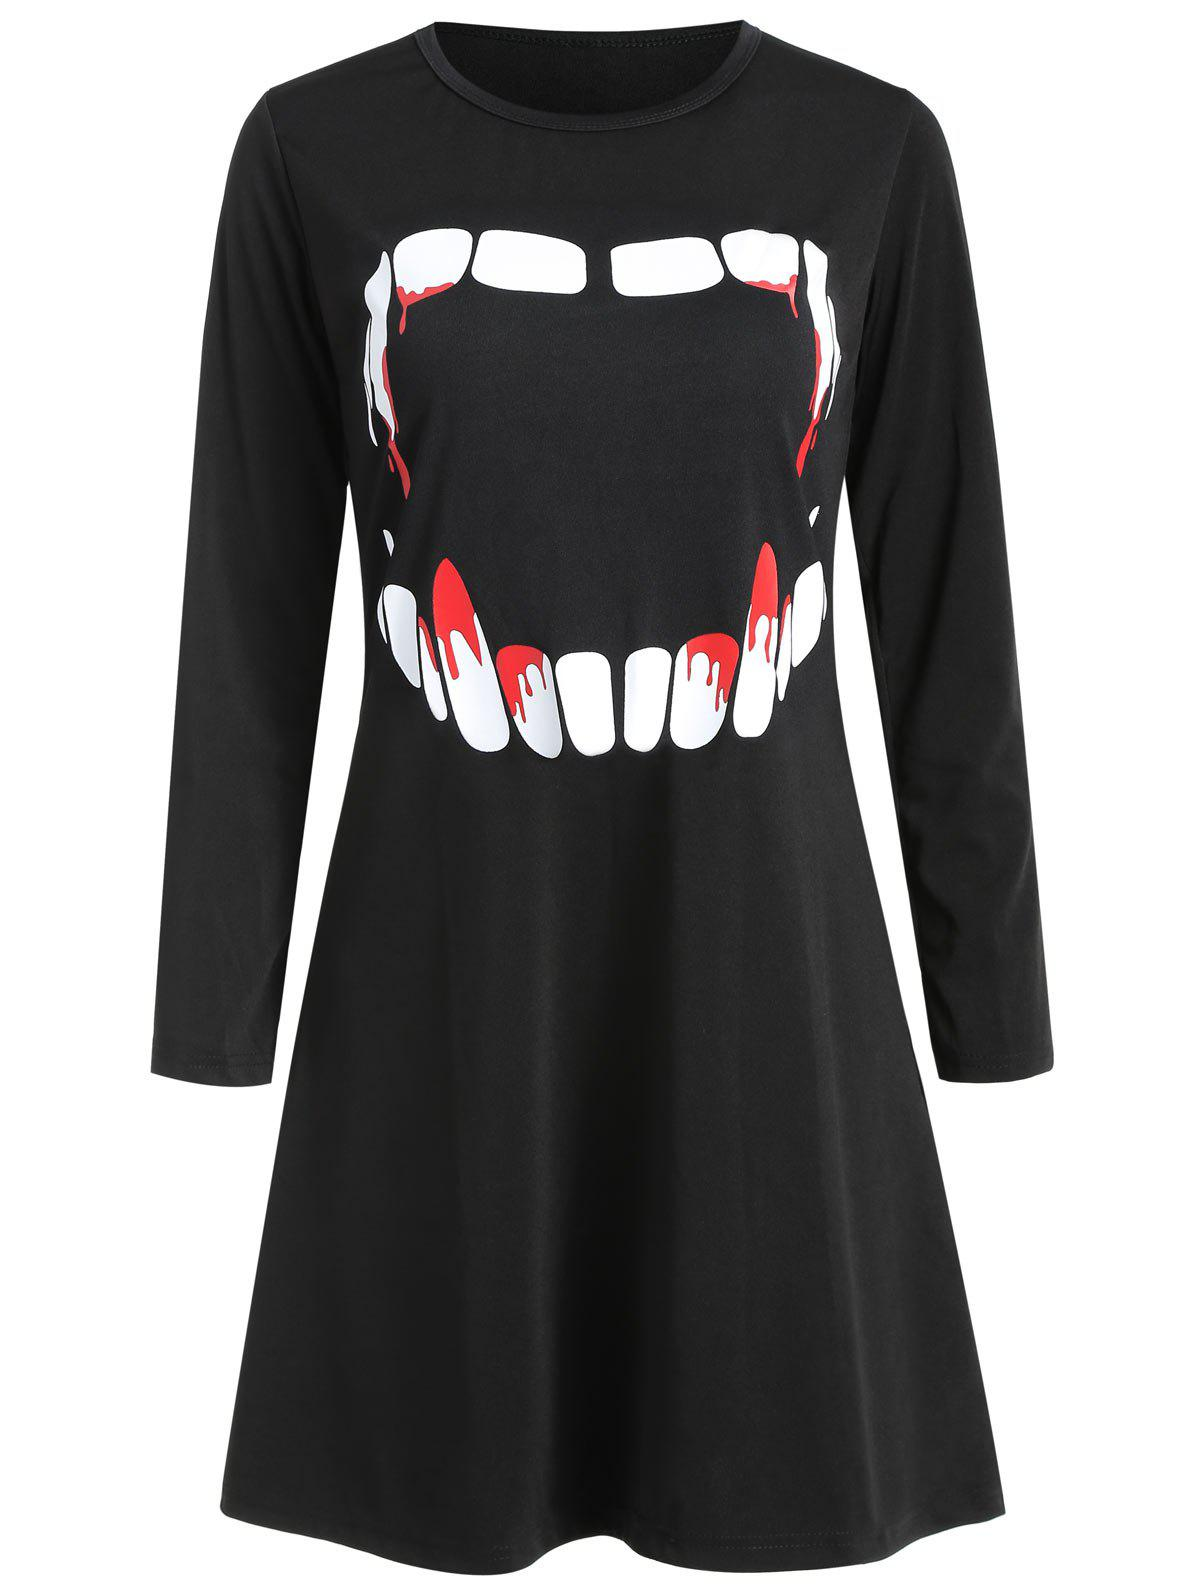 Chic Women's Round Neck Long Sleeve Halloween Printing A-line Dress